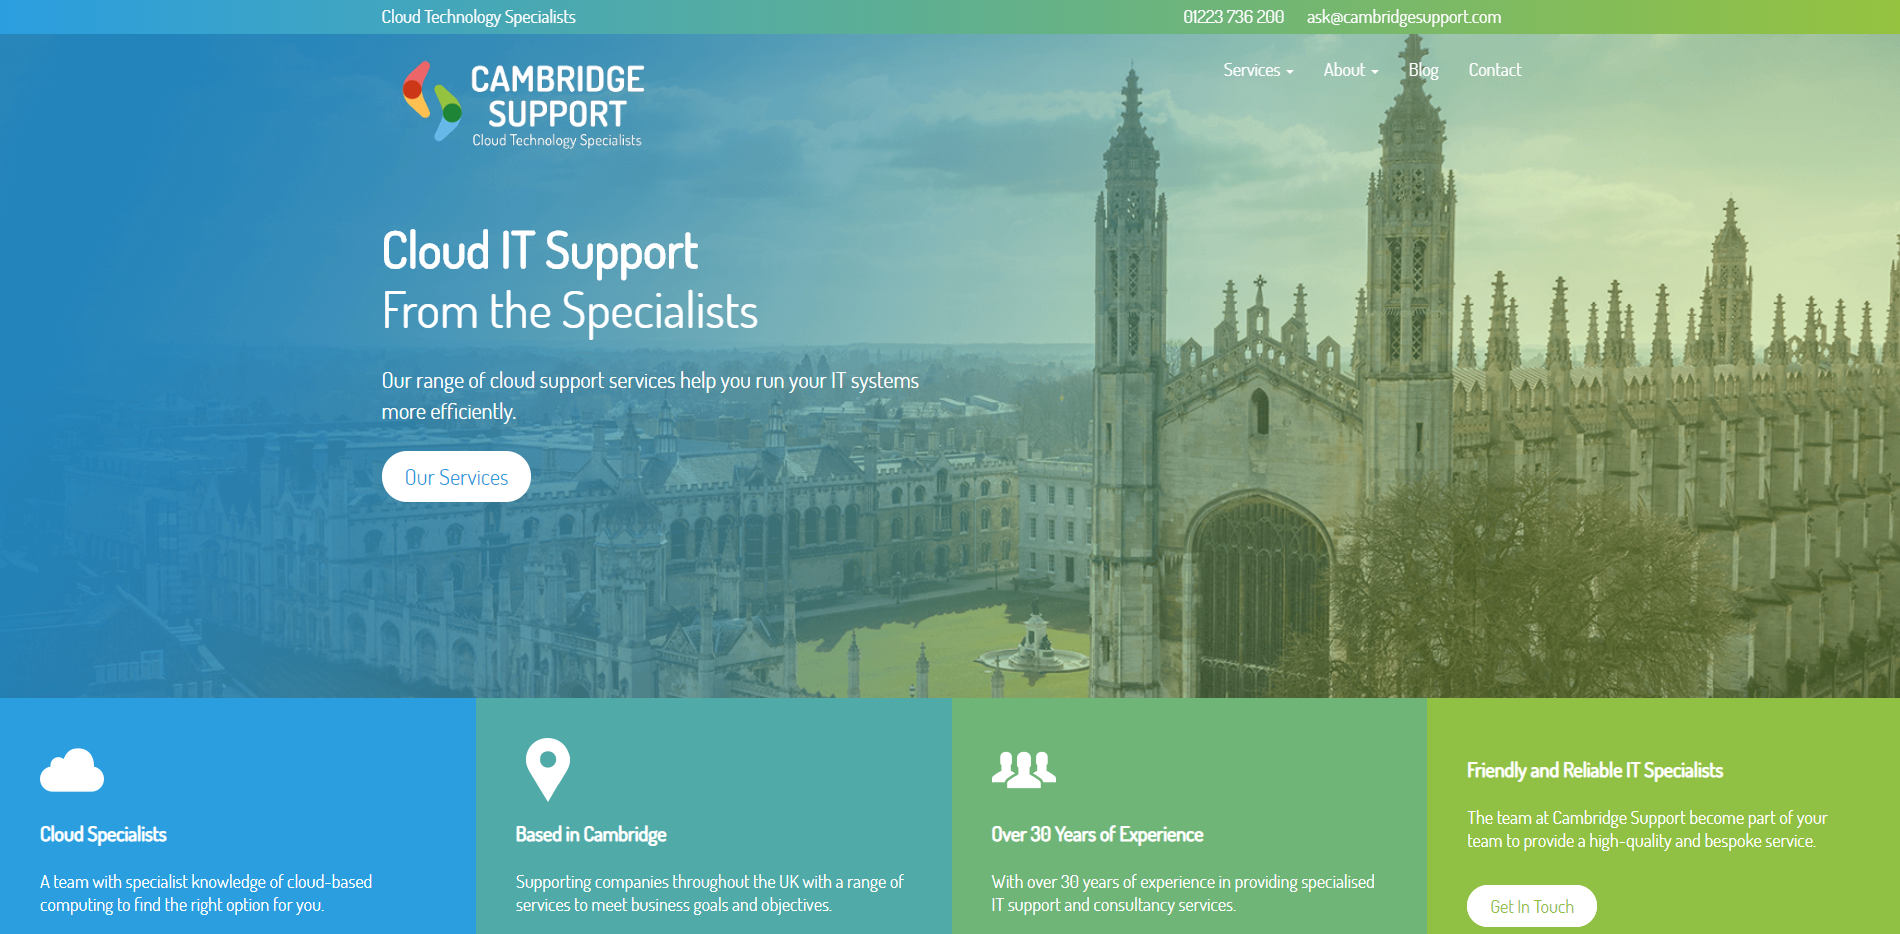 We are excited to announce we have launched a brand new website for Cambridge Support.